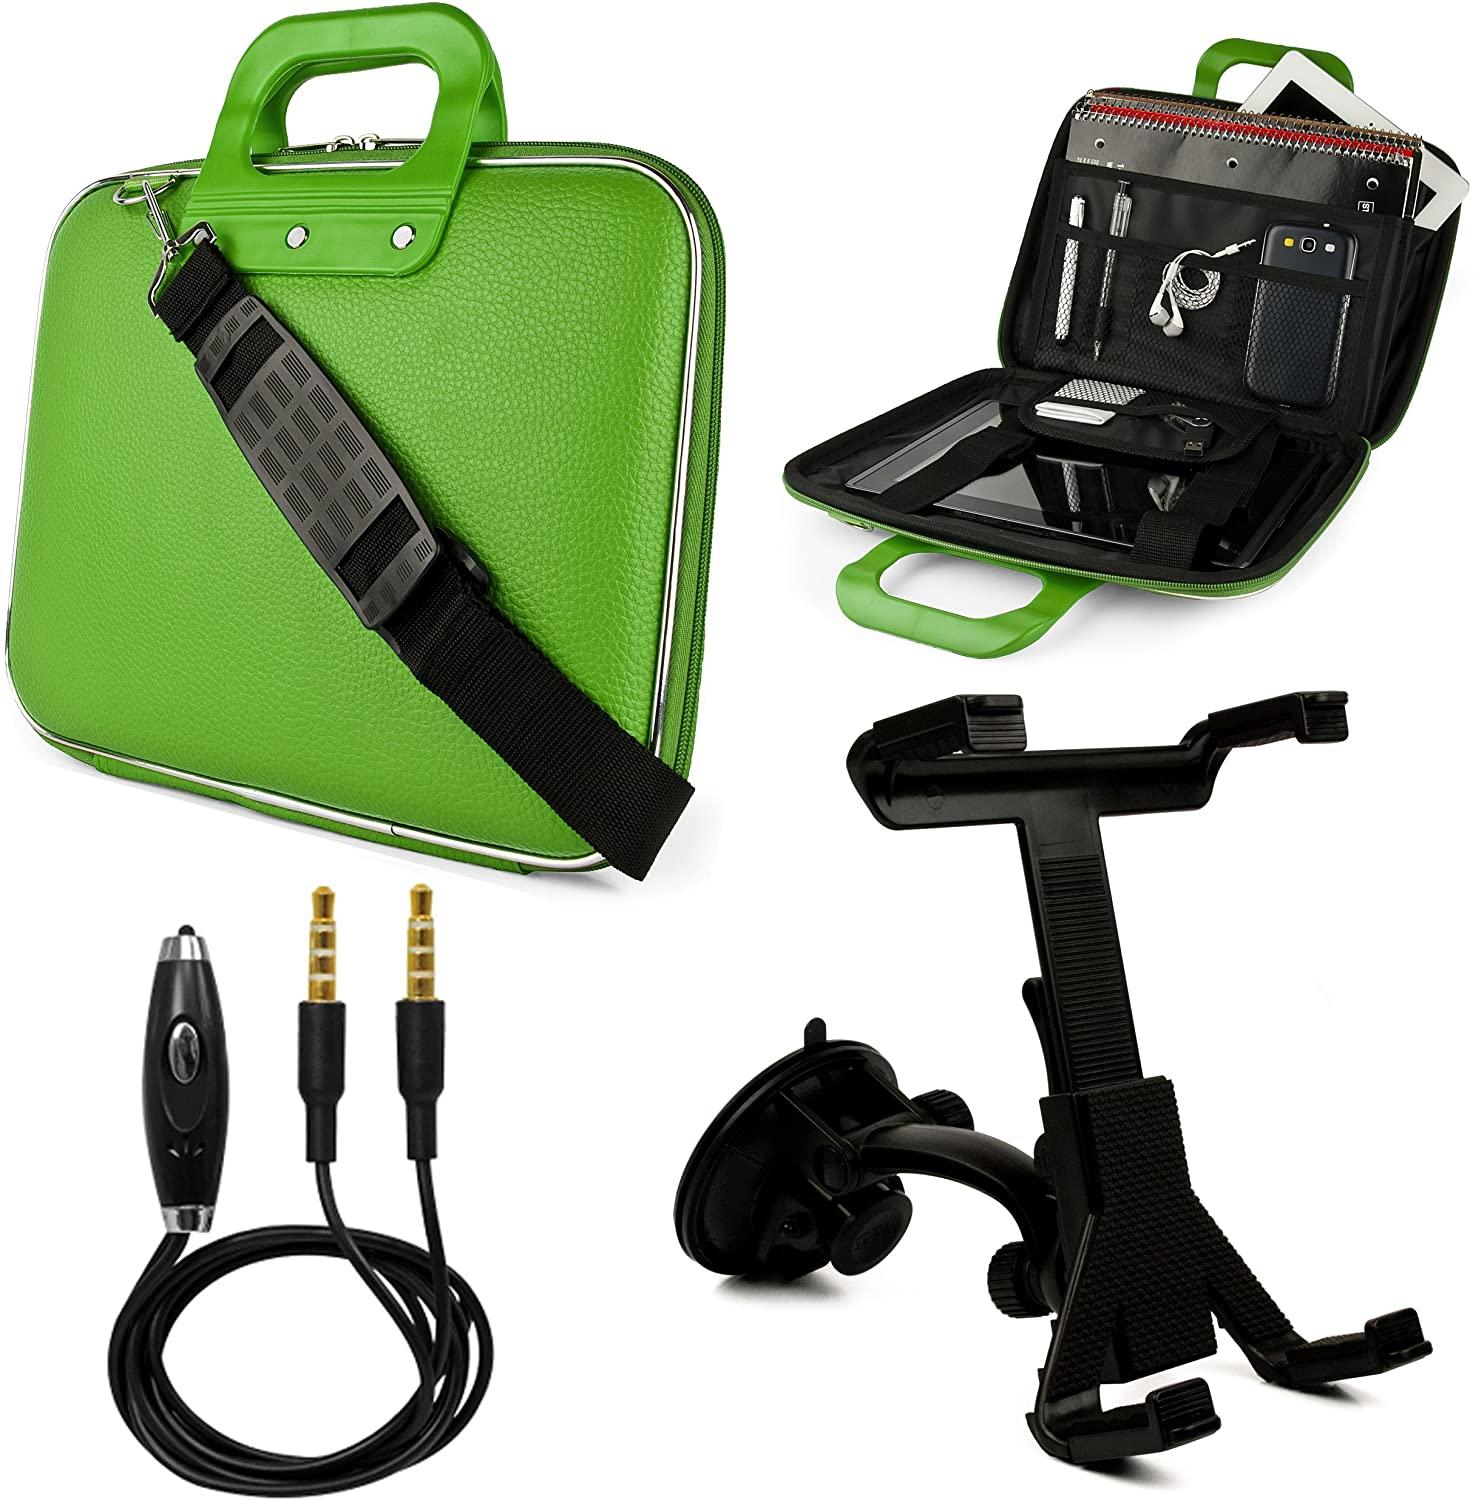 Cady 9 inch Tablet Messenger Bag for NeuTab Tablets up to 10.5 inches with Mount and 3.5mm Auxiliary Cable